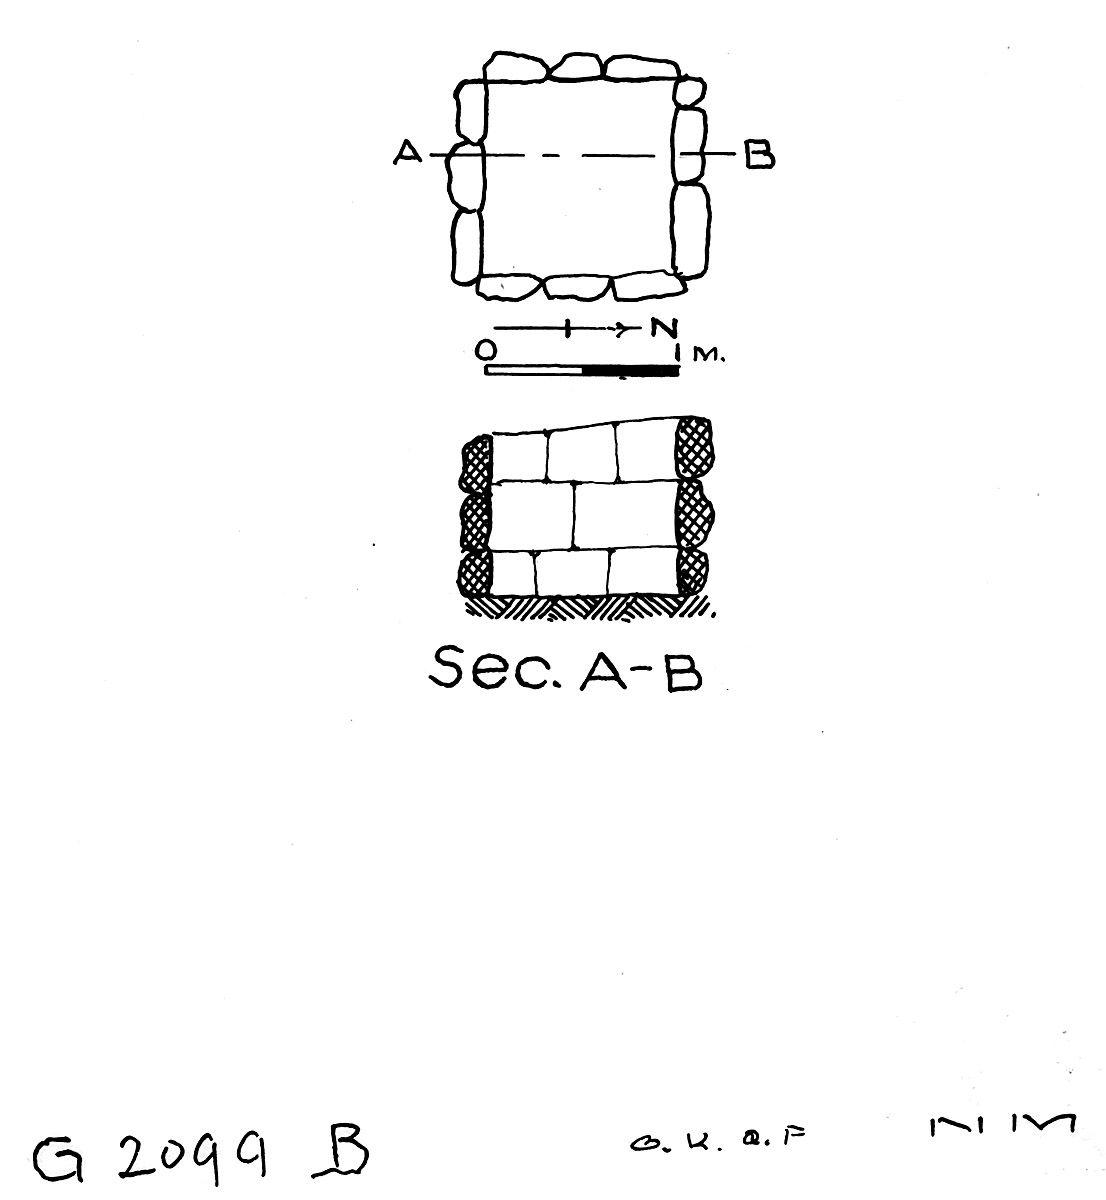 Maps and plans: G 2099, Shaft B